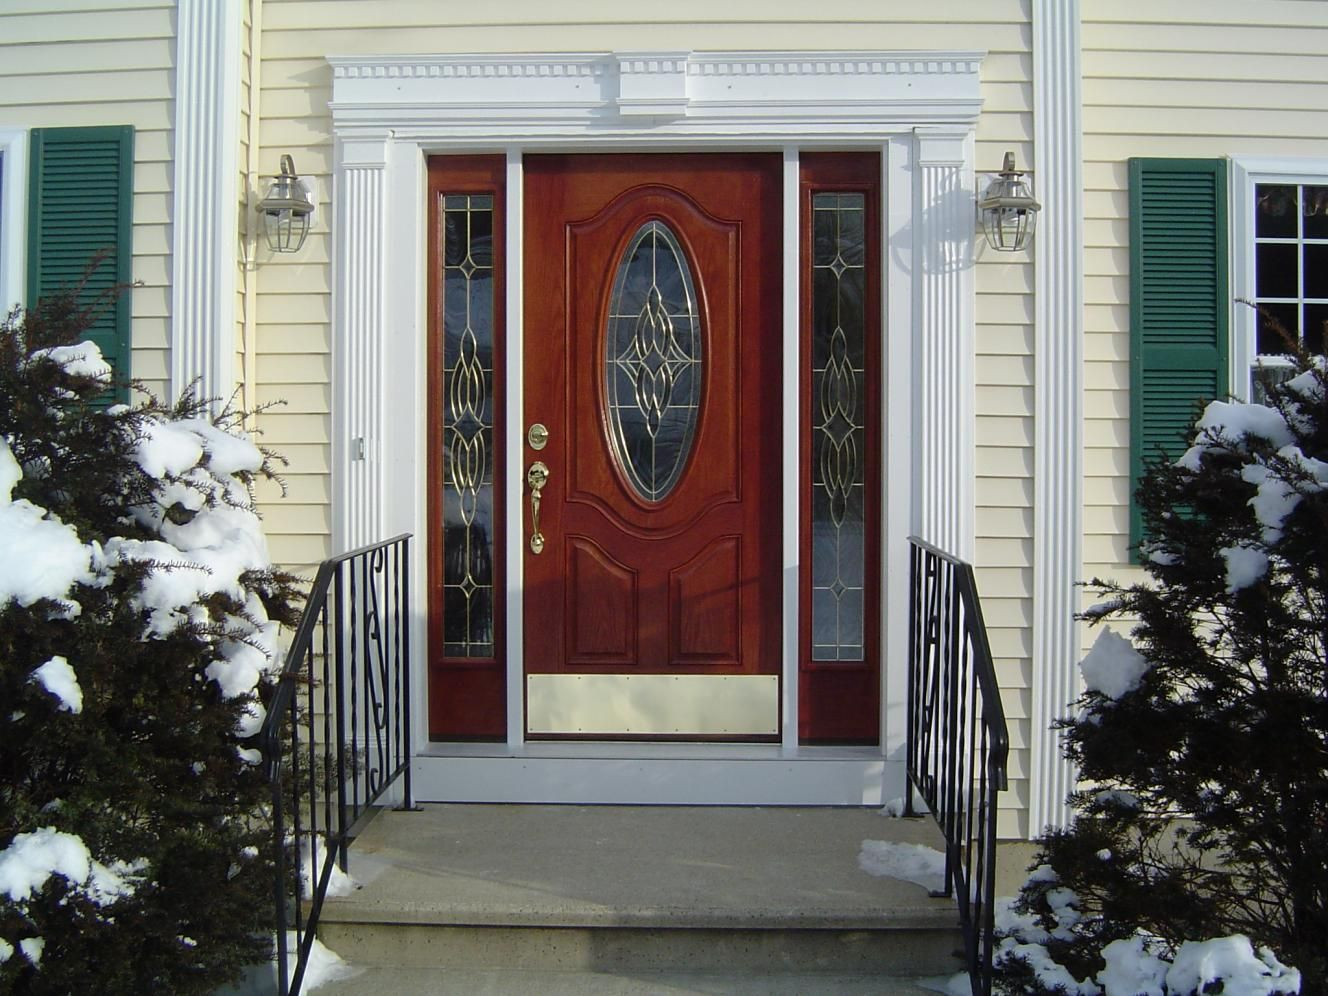 How Long To Install Exterior Door? - Carpentry - DIY Chatroom Home ...